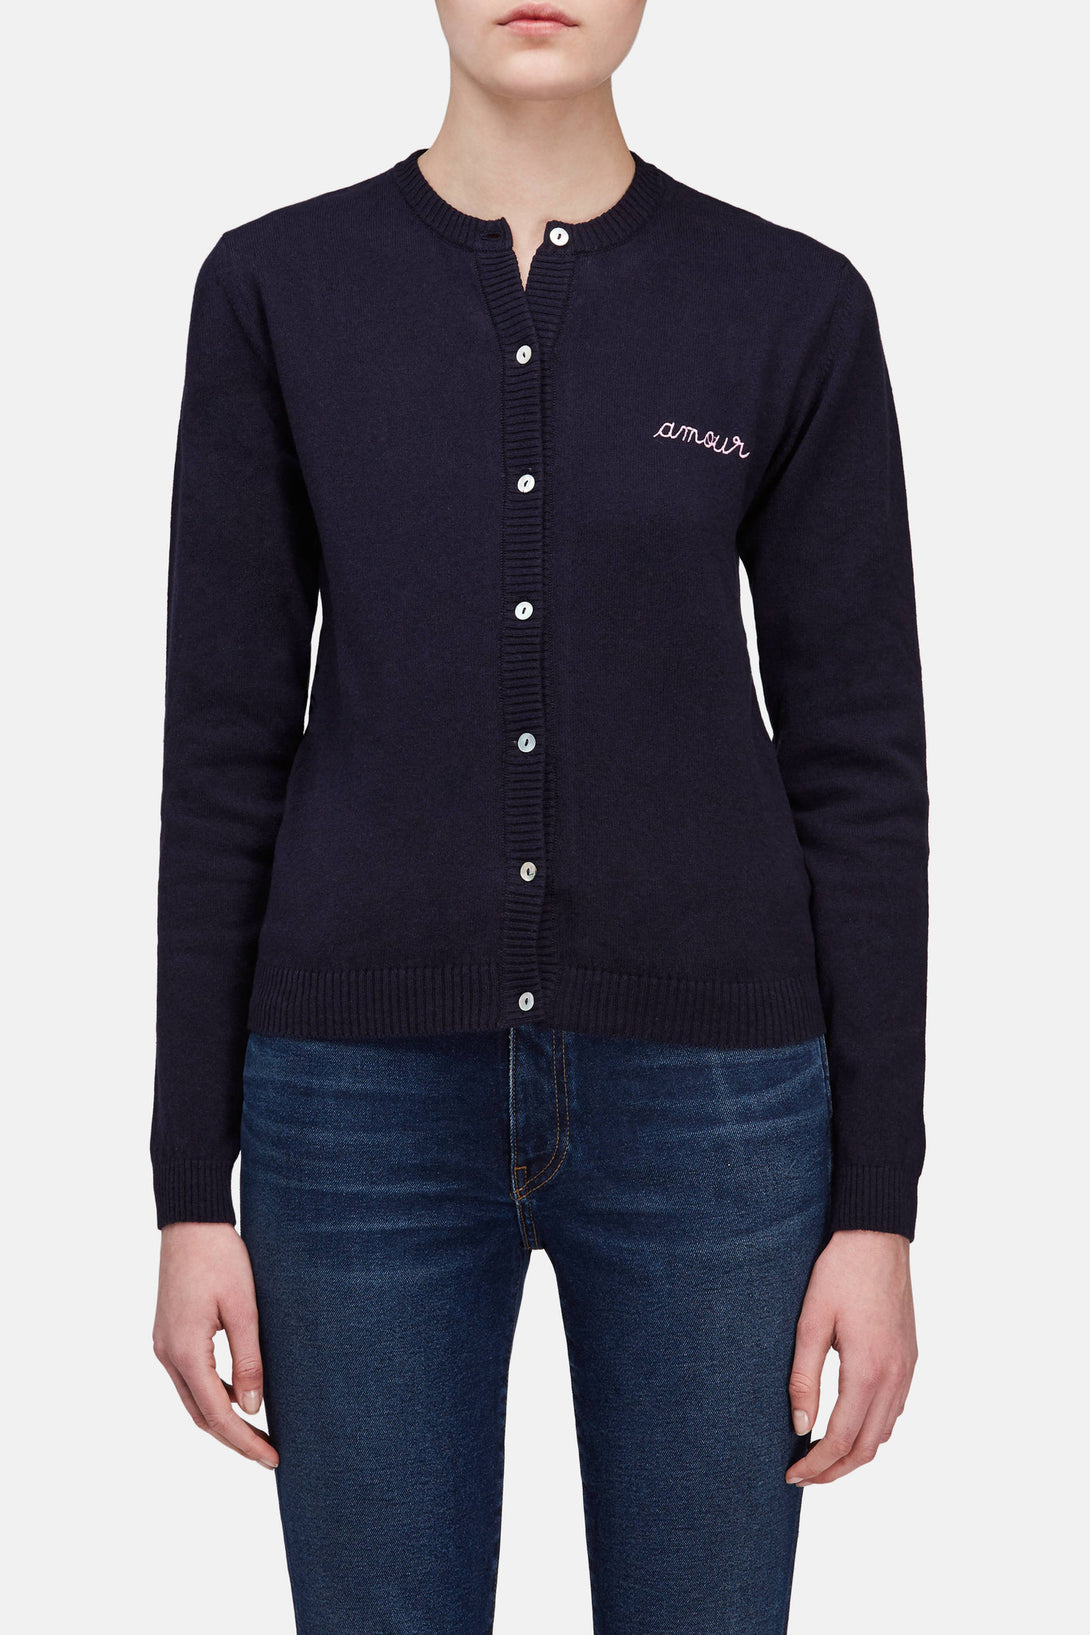 Amour Cardigan - Navy